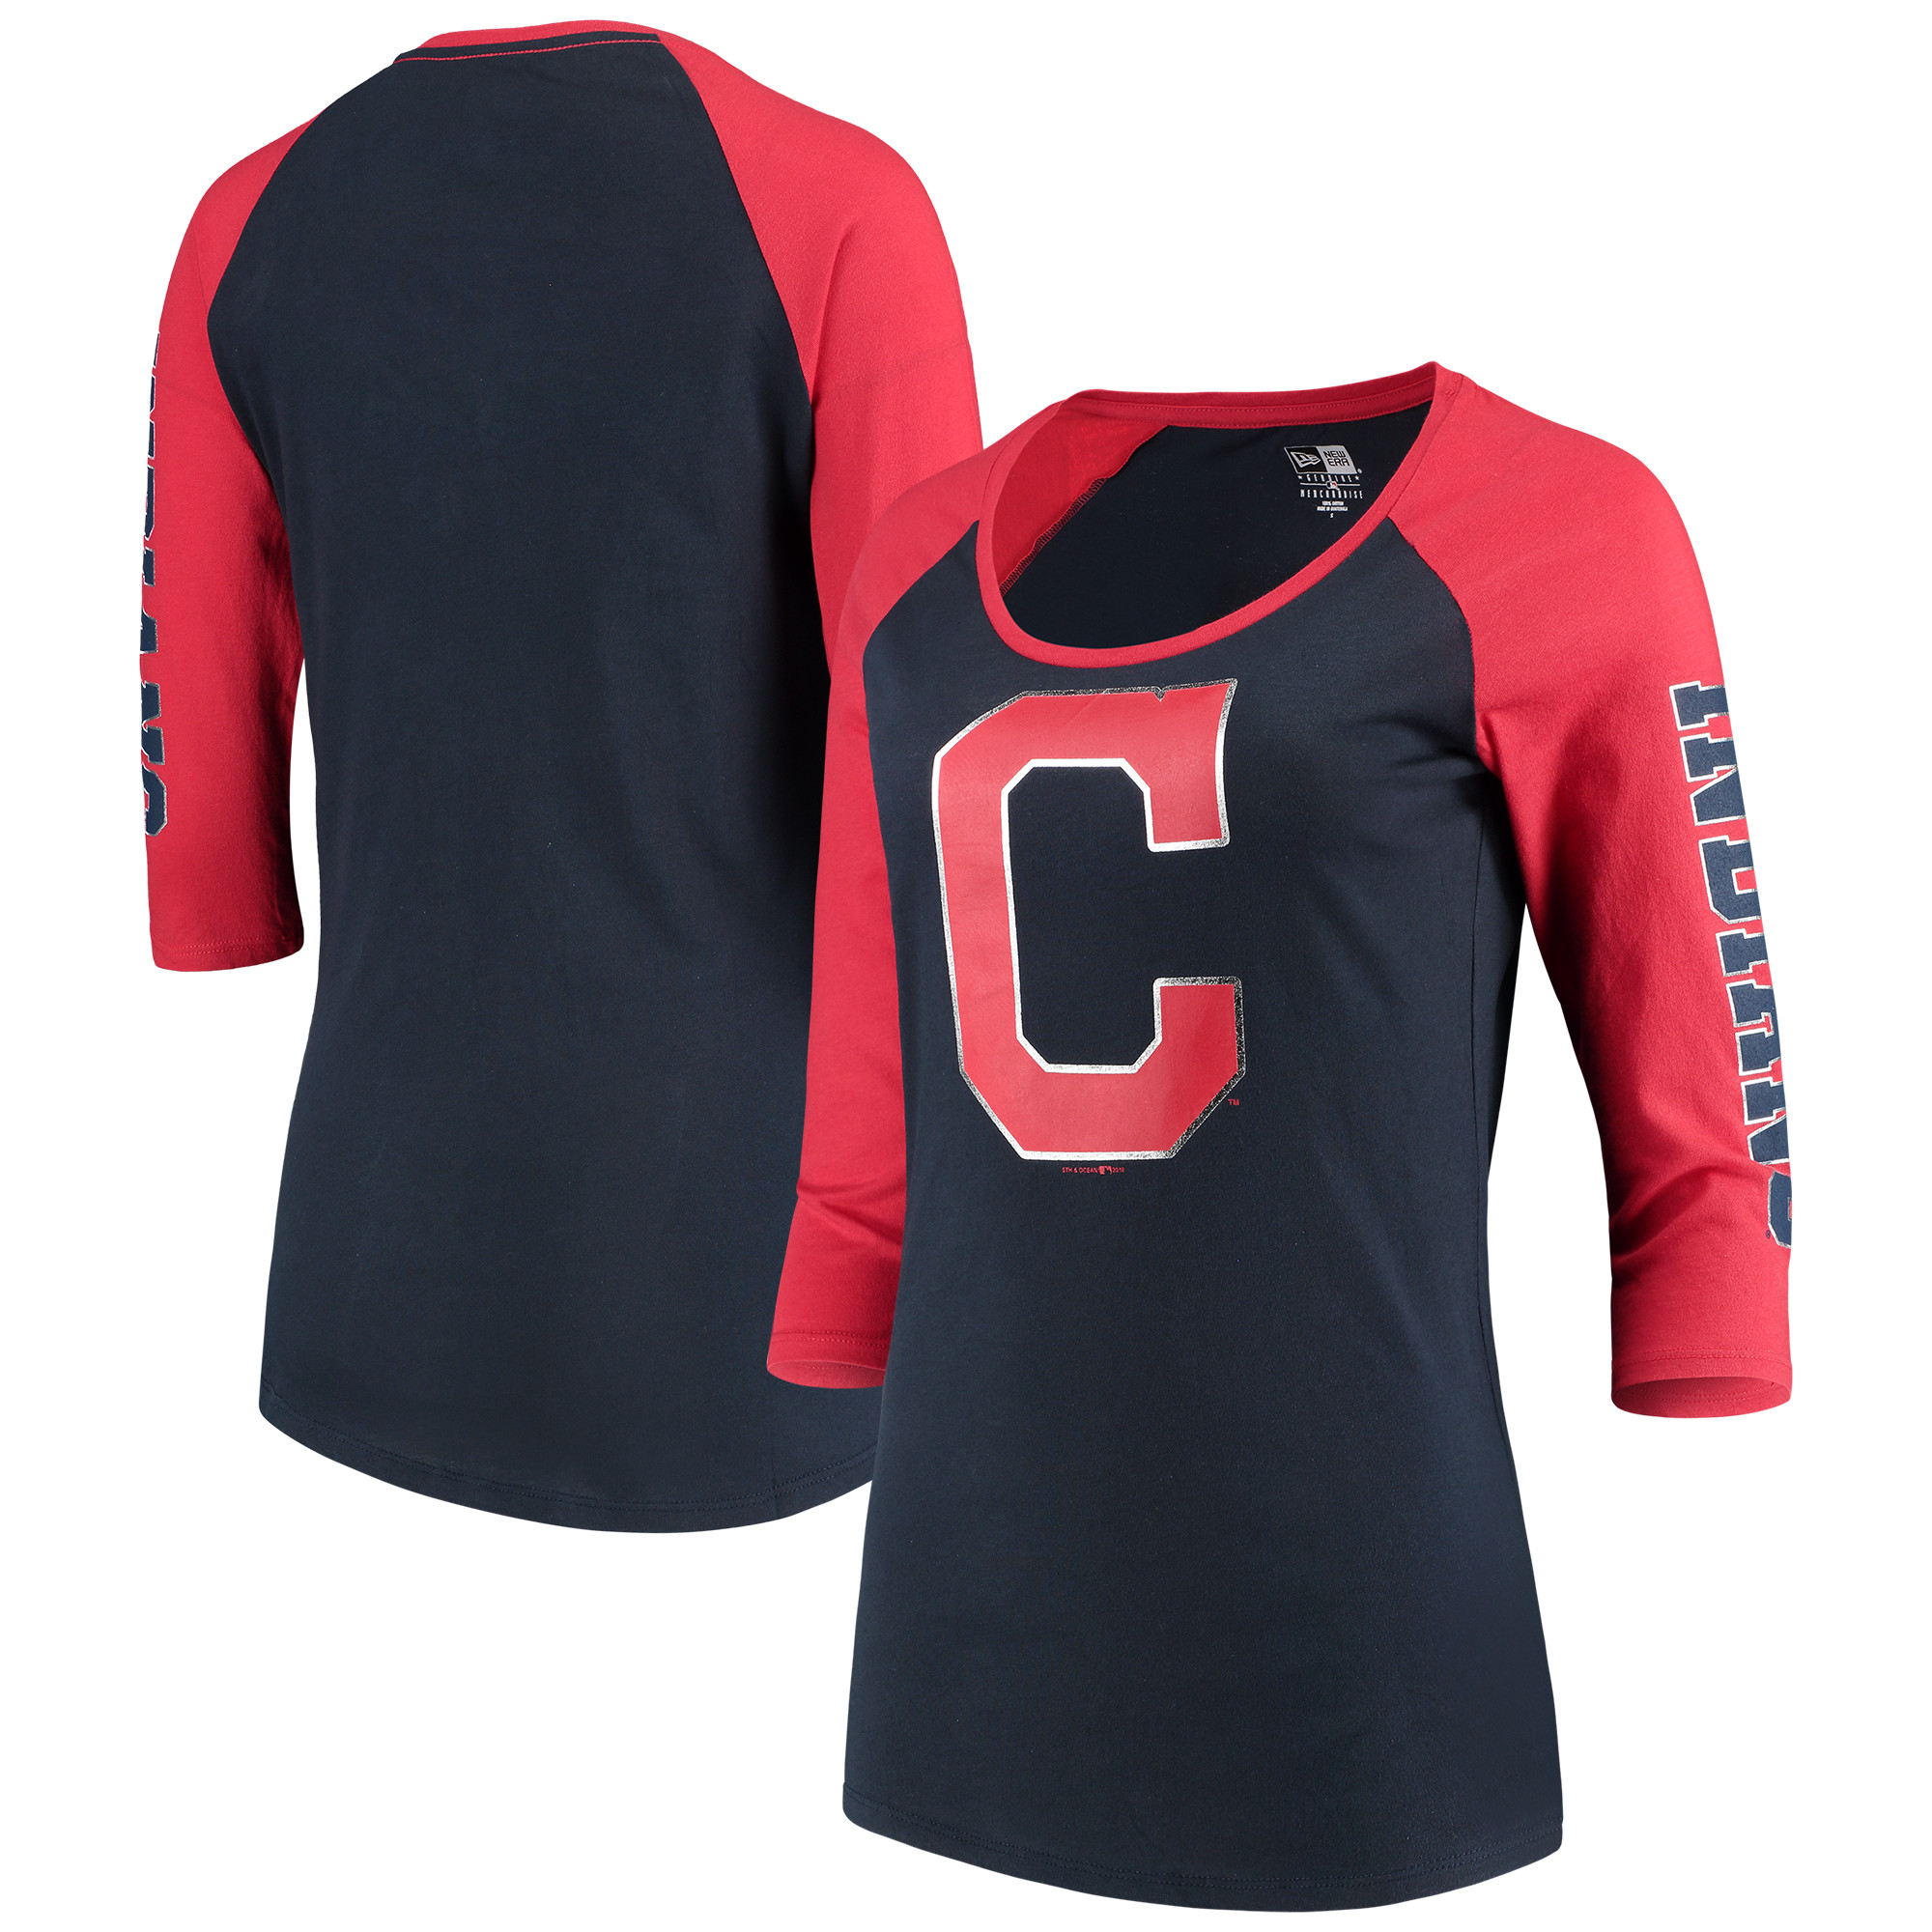 Cleveland Indians 5th & Ocean by New Era Women's Foil 3/4-Sleeve T-Shirt - Navy/Red